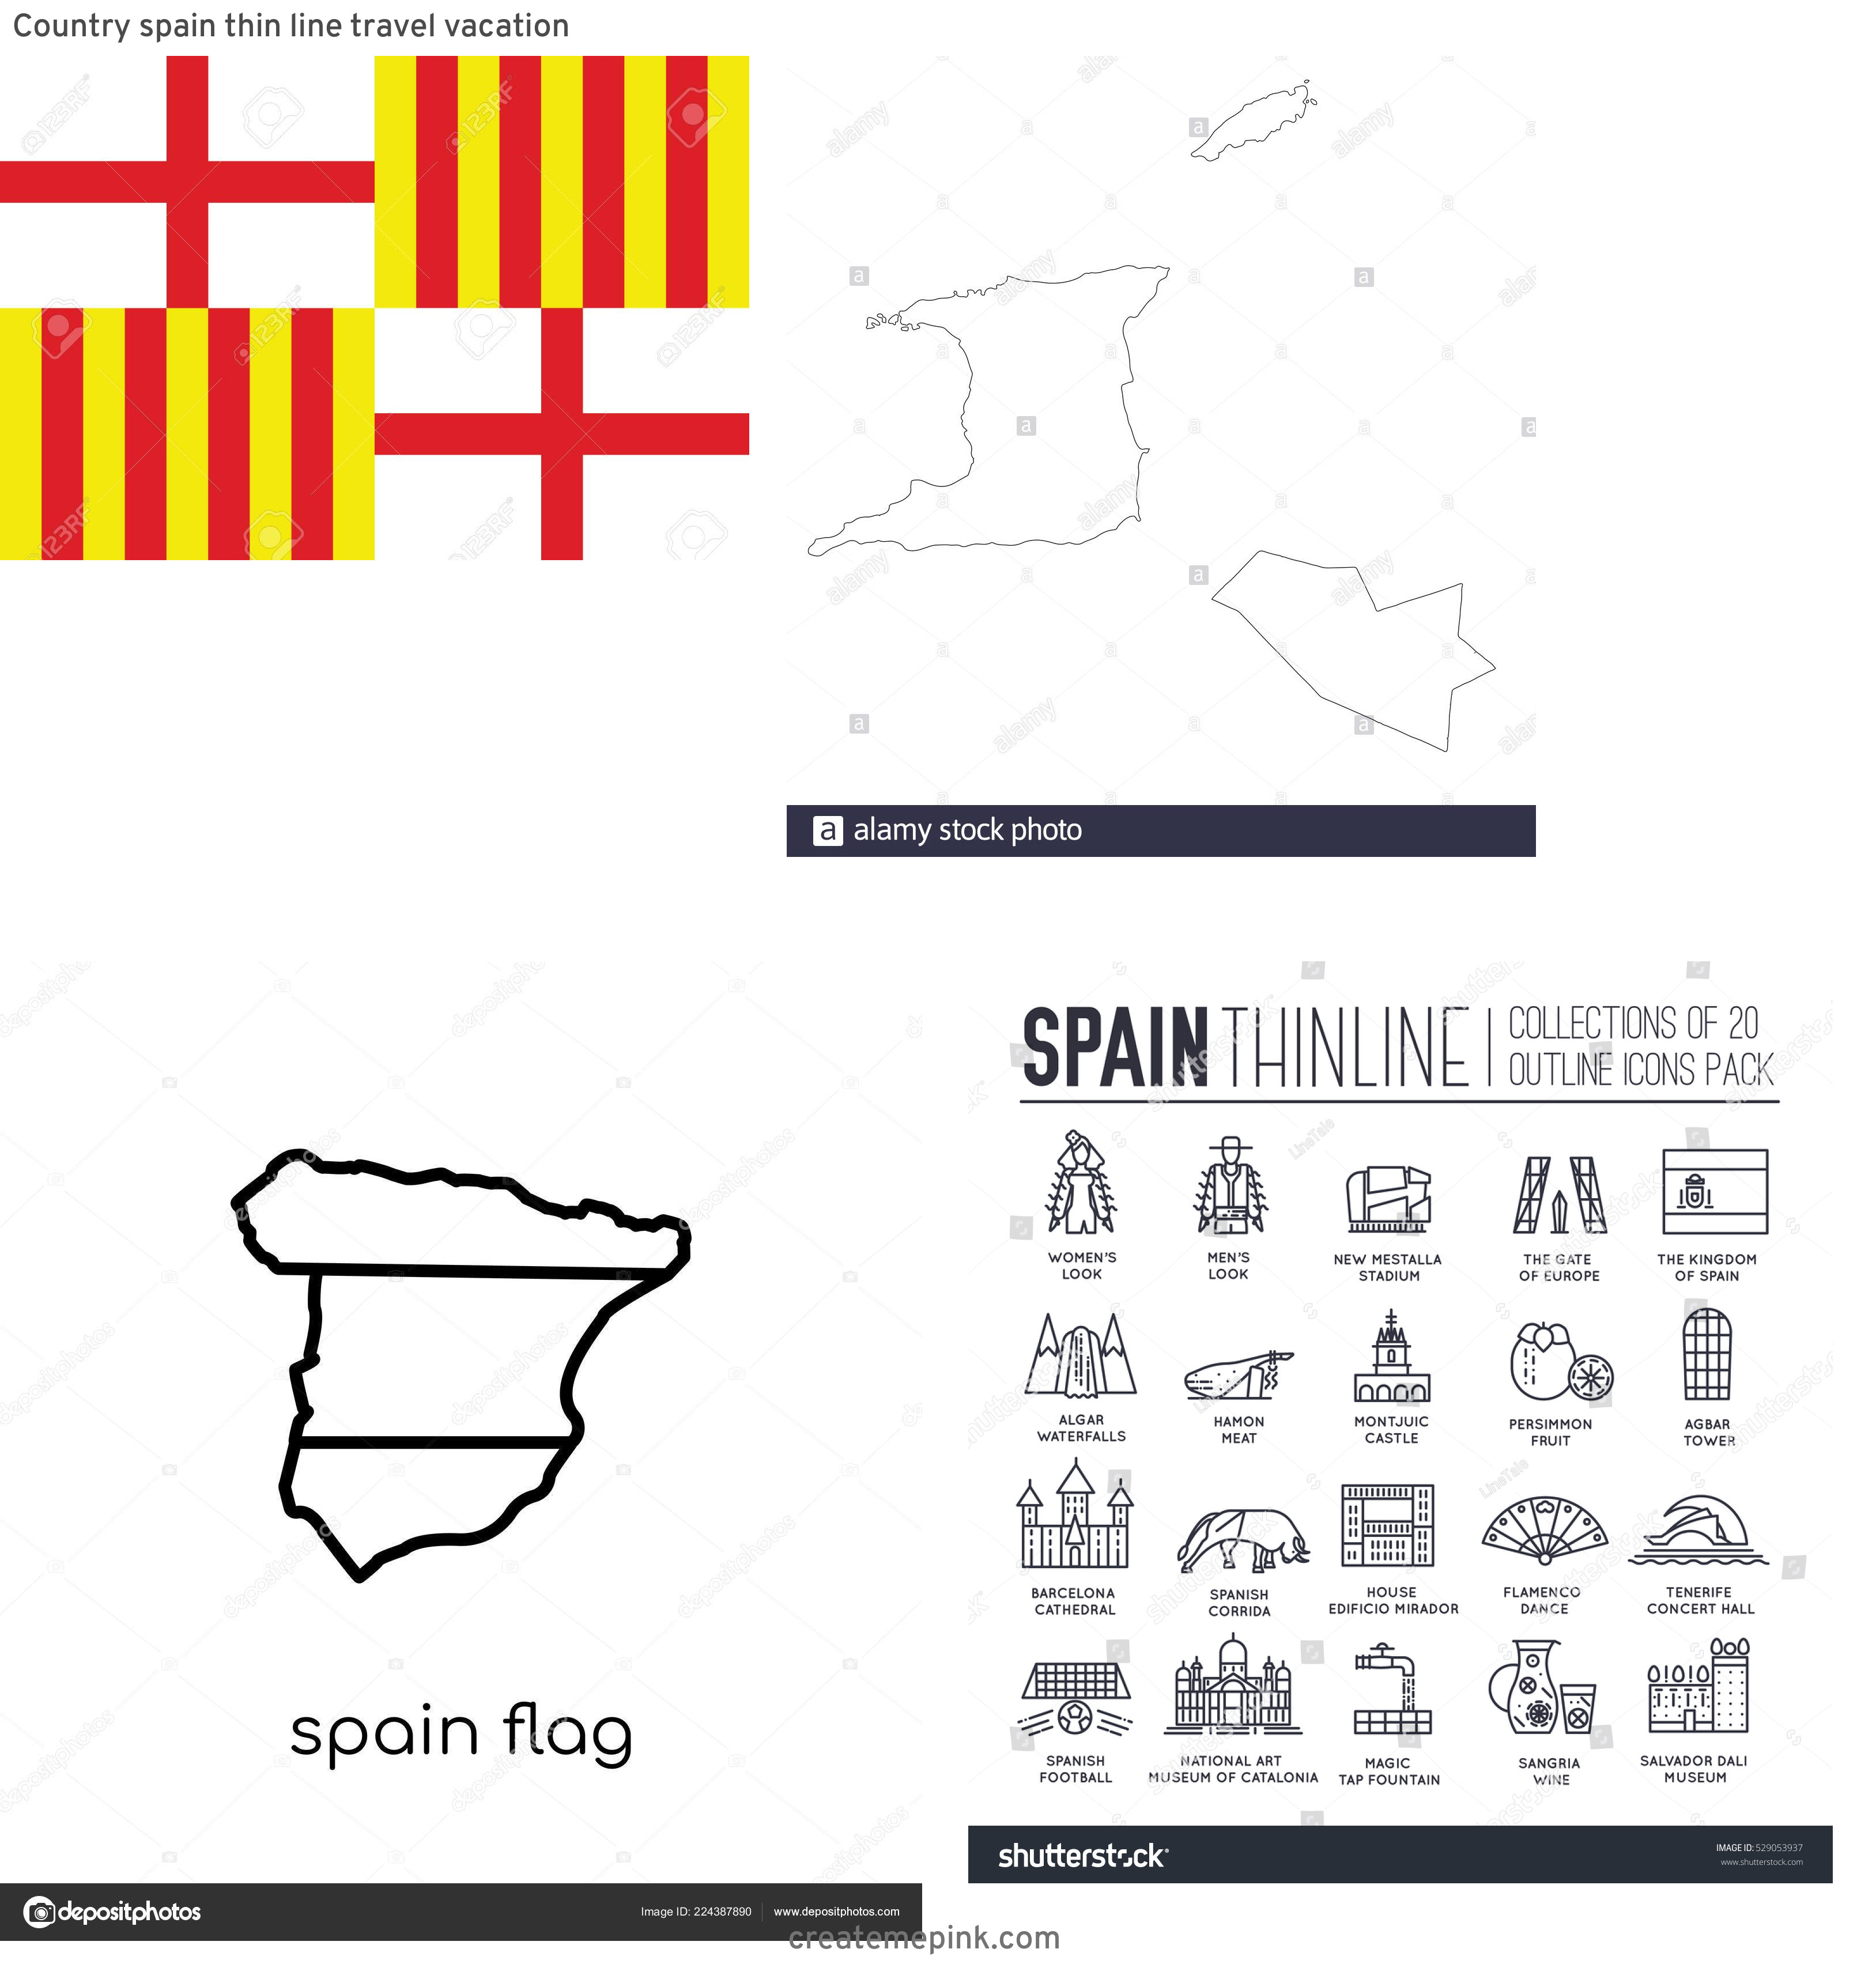 Spain Country Vectors Line: Country Spain Thin Line Travel Vacation